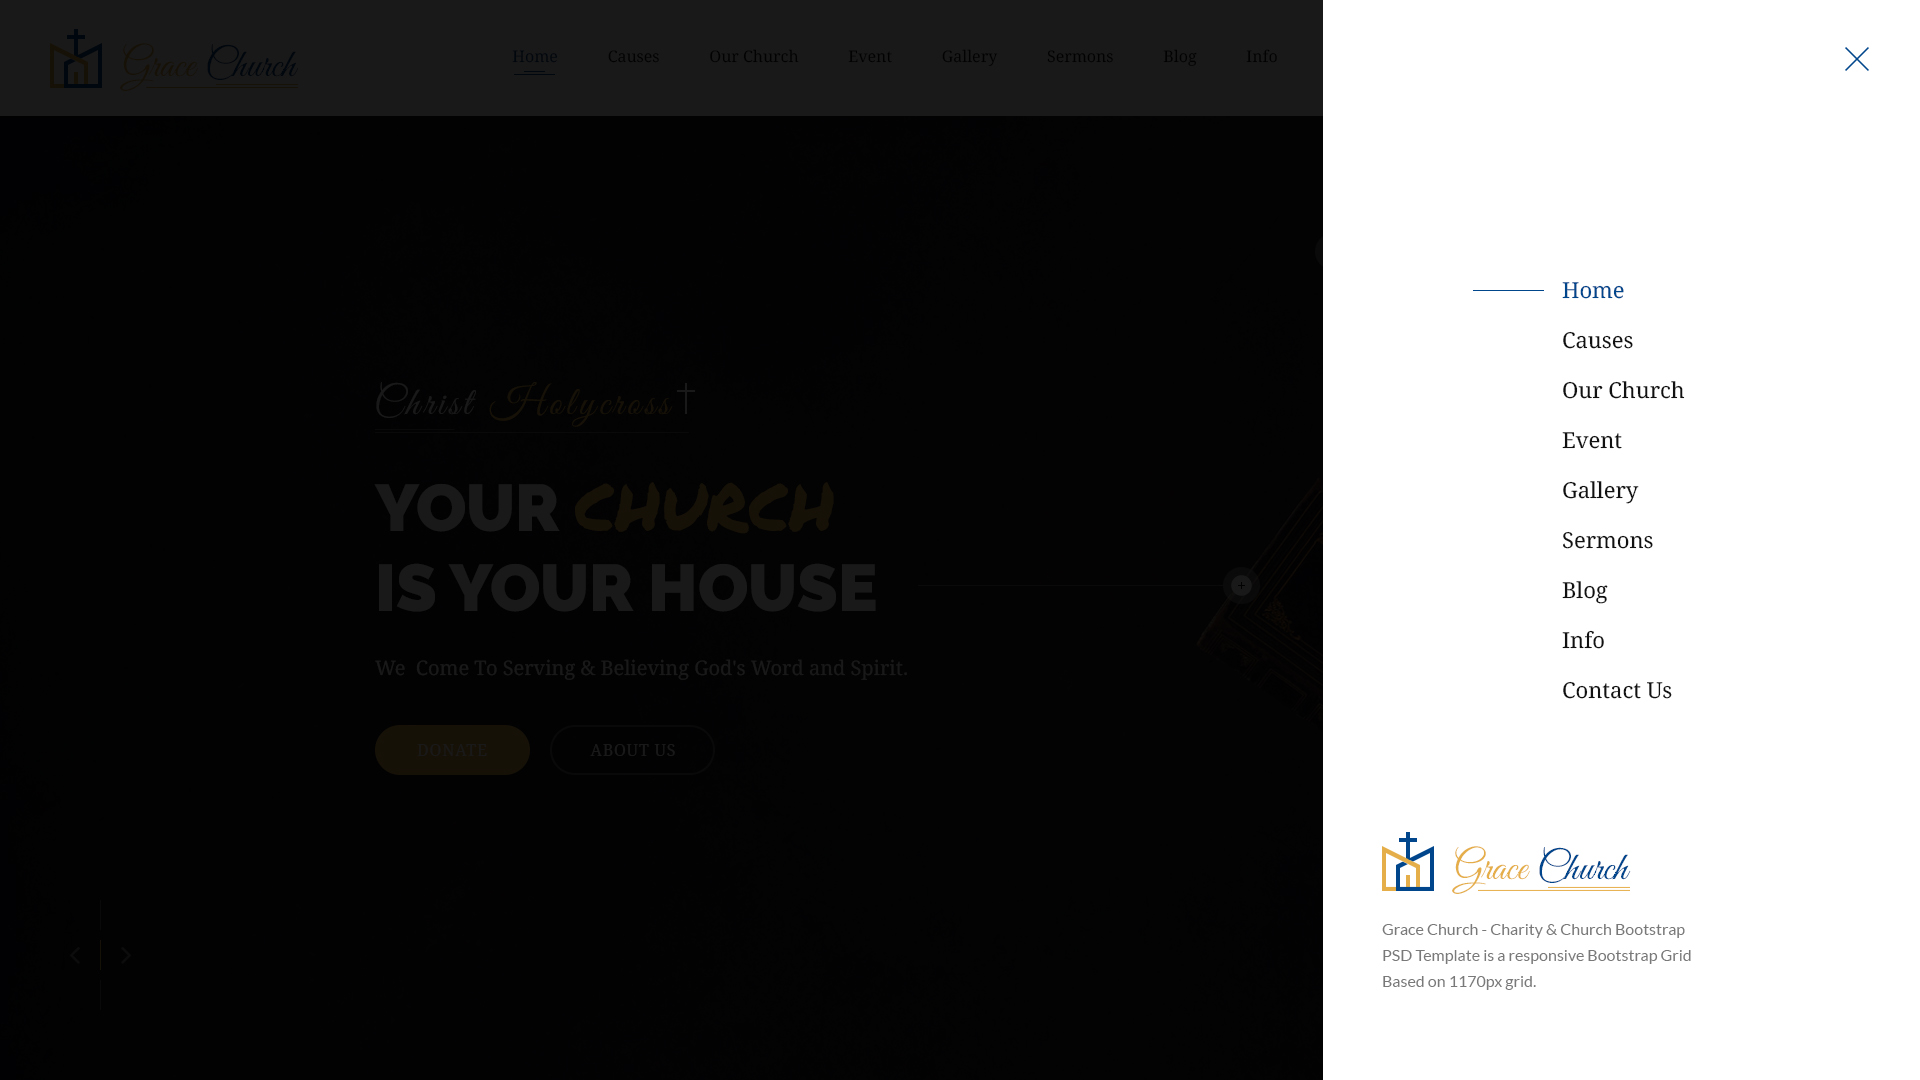 Grace church charity church bootstrap html template by for Html side menu bar template